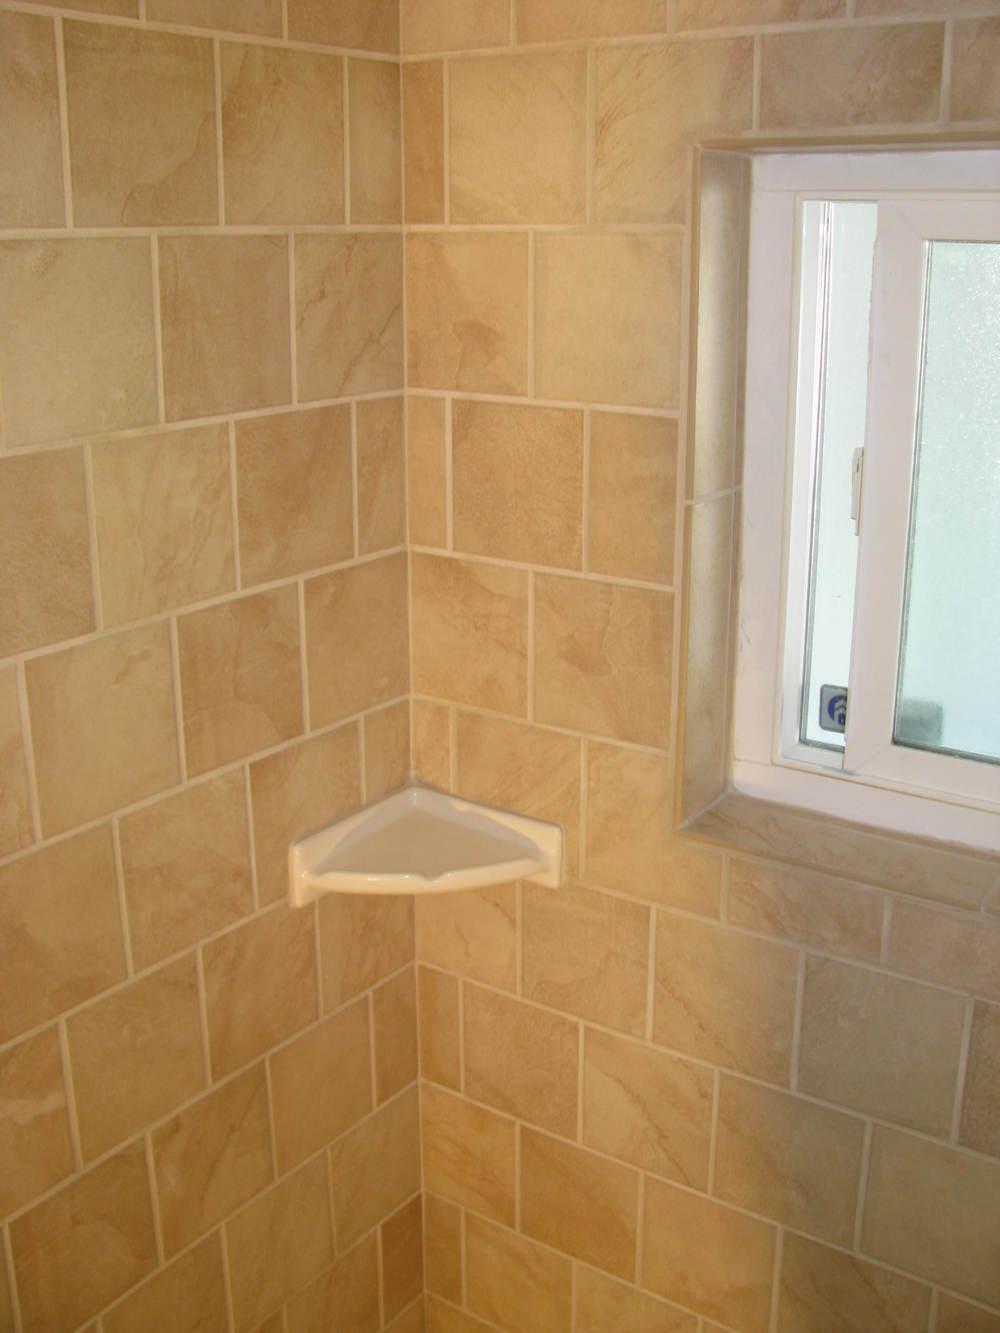 Tub Shower Wall Corner left side.JPG